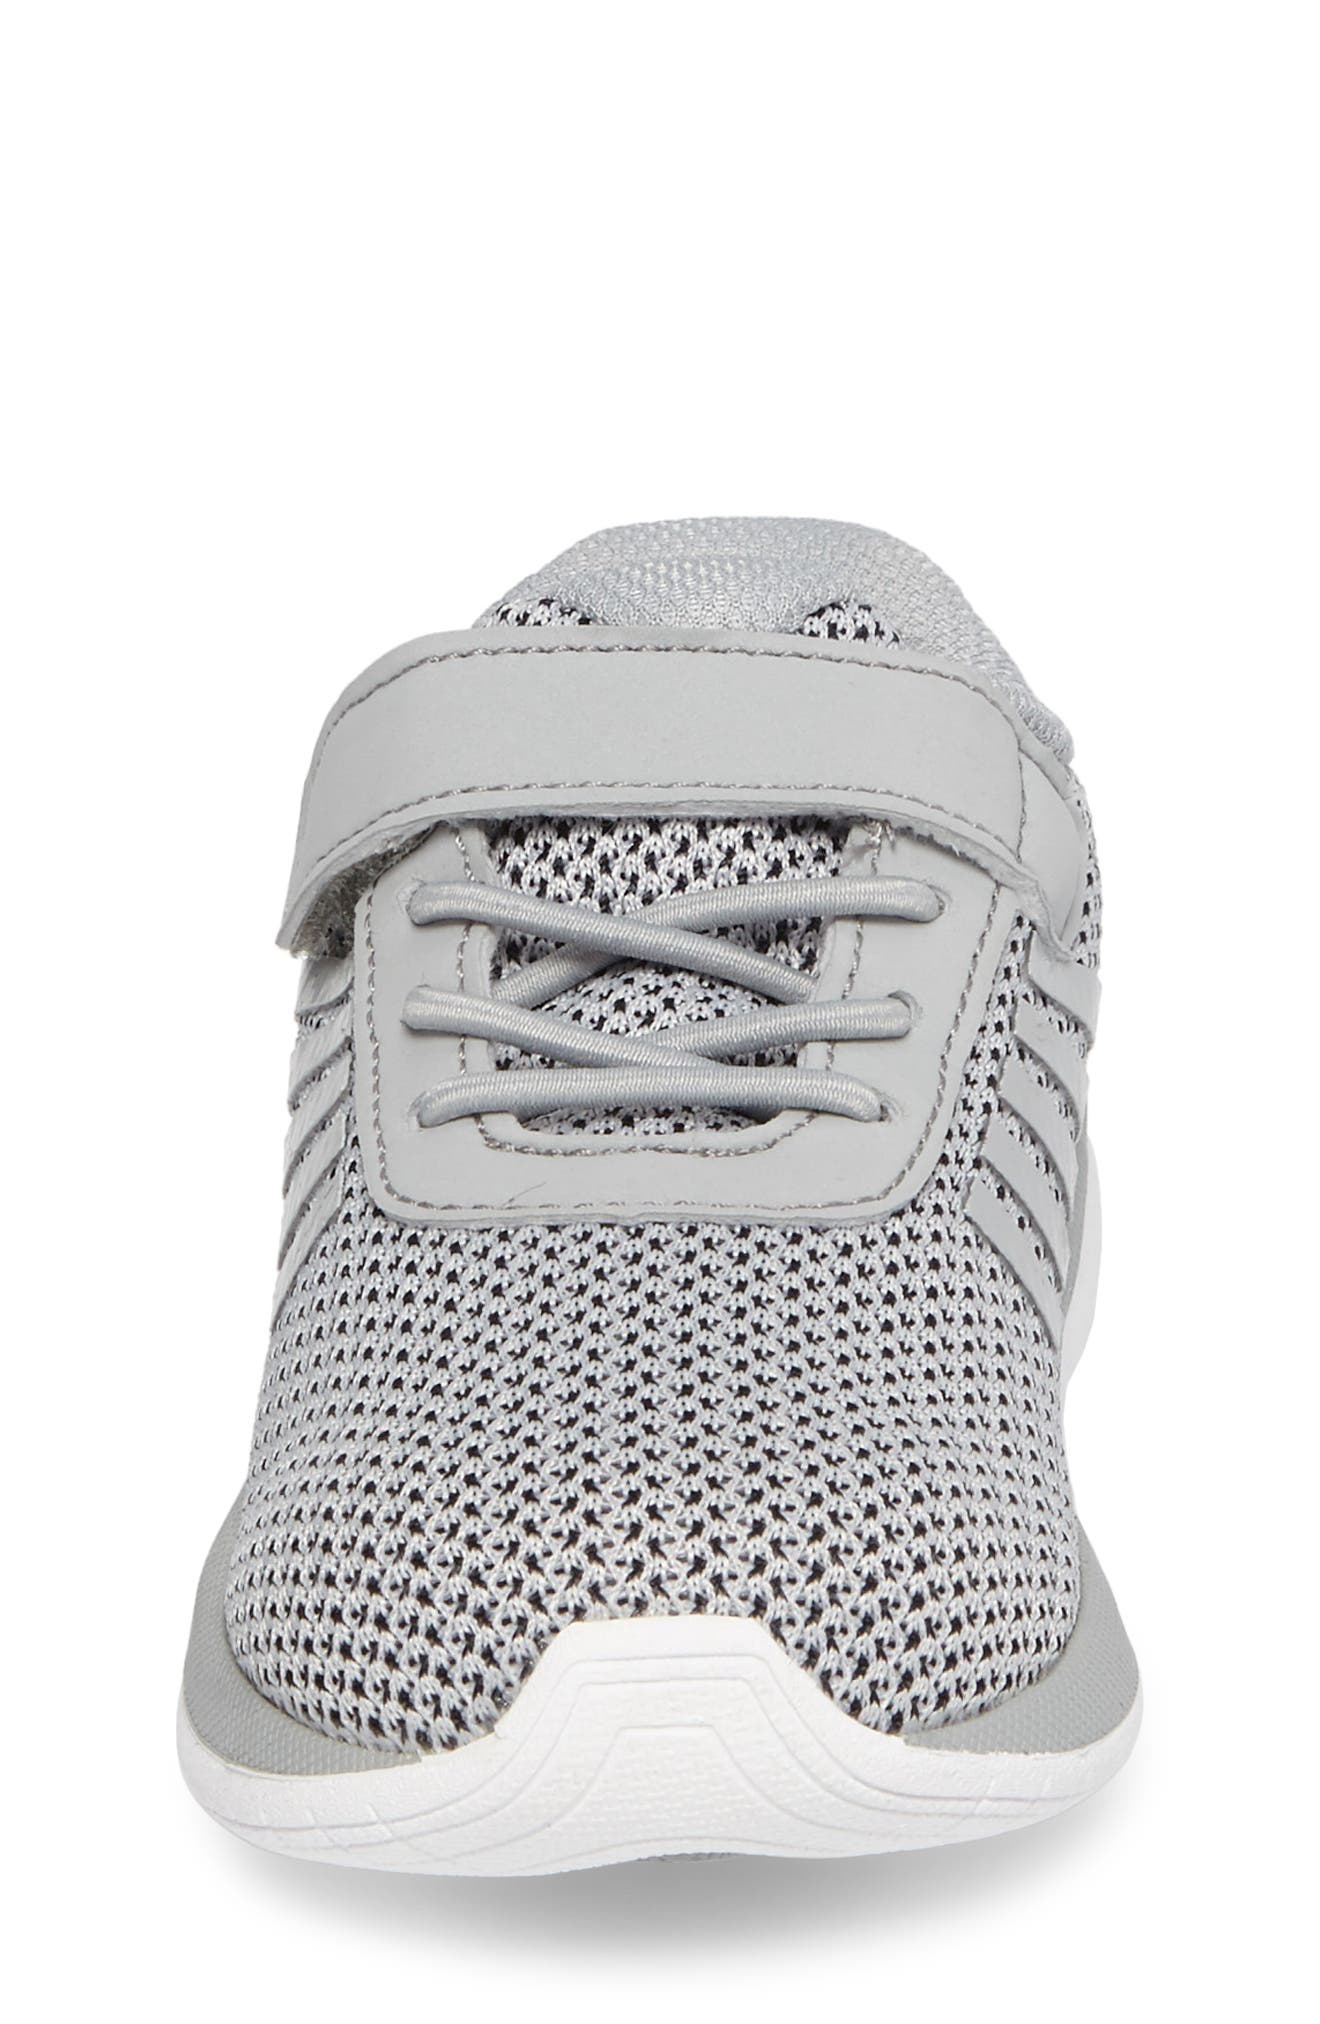 Tubes Infinity Sneaker,                             Alternate thumbnail 4, color,                             Highrise/ White